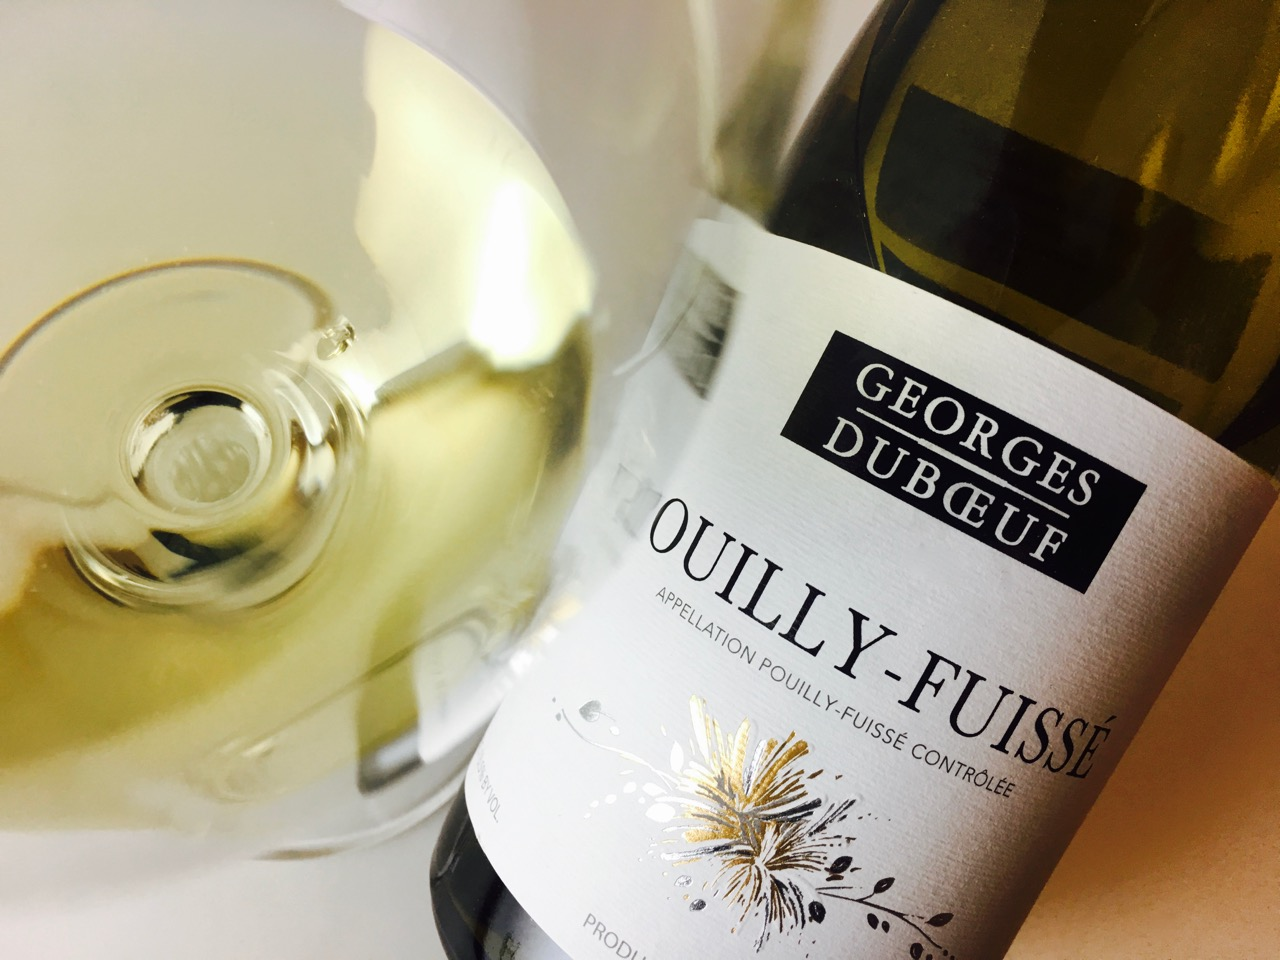 2015 Georges Duboeuf Pouilly-Fuissé